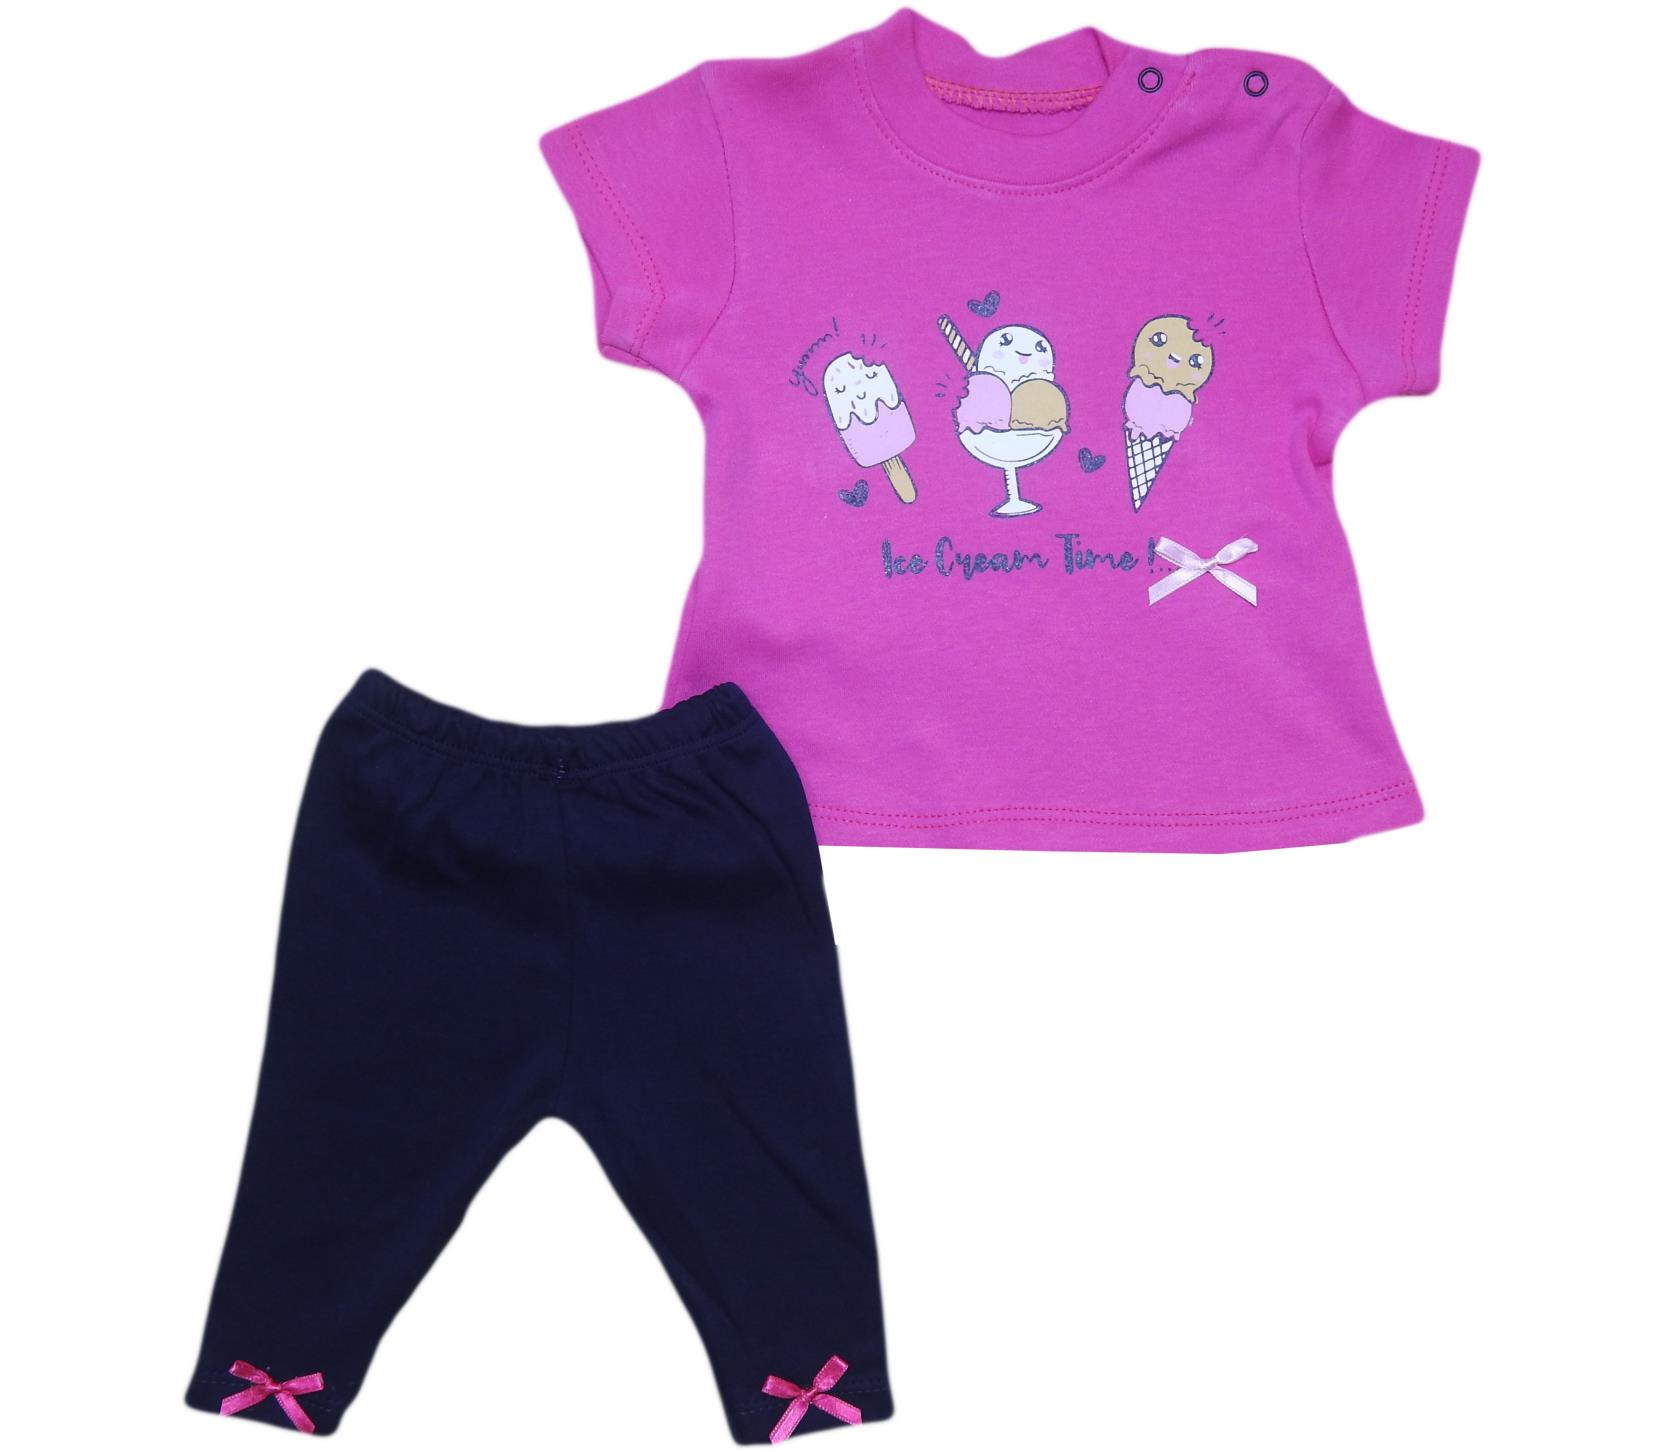 670 Wholesale quality and cheap two piece set for girl babies 6-12-18 month